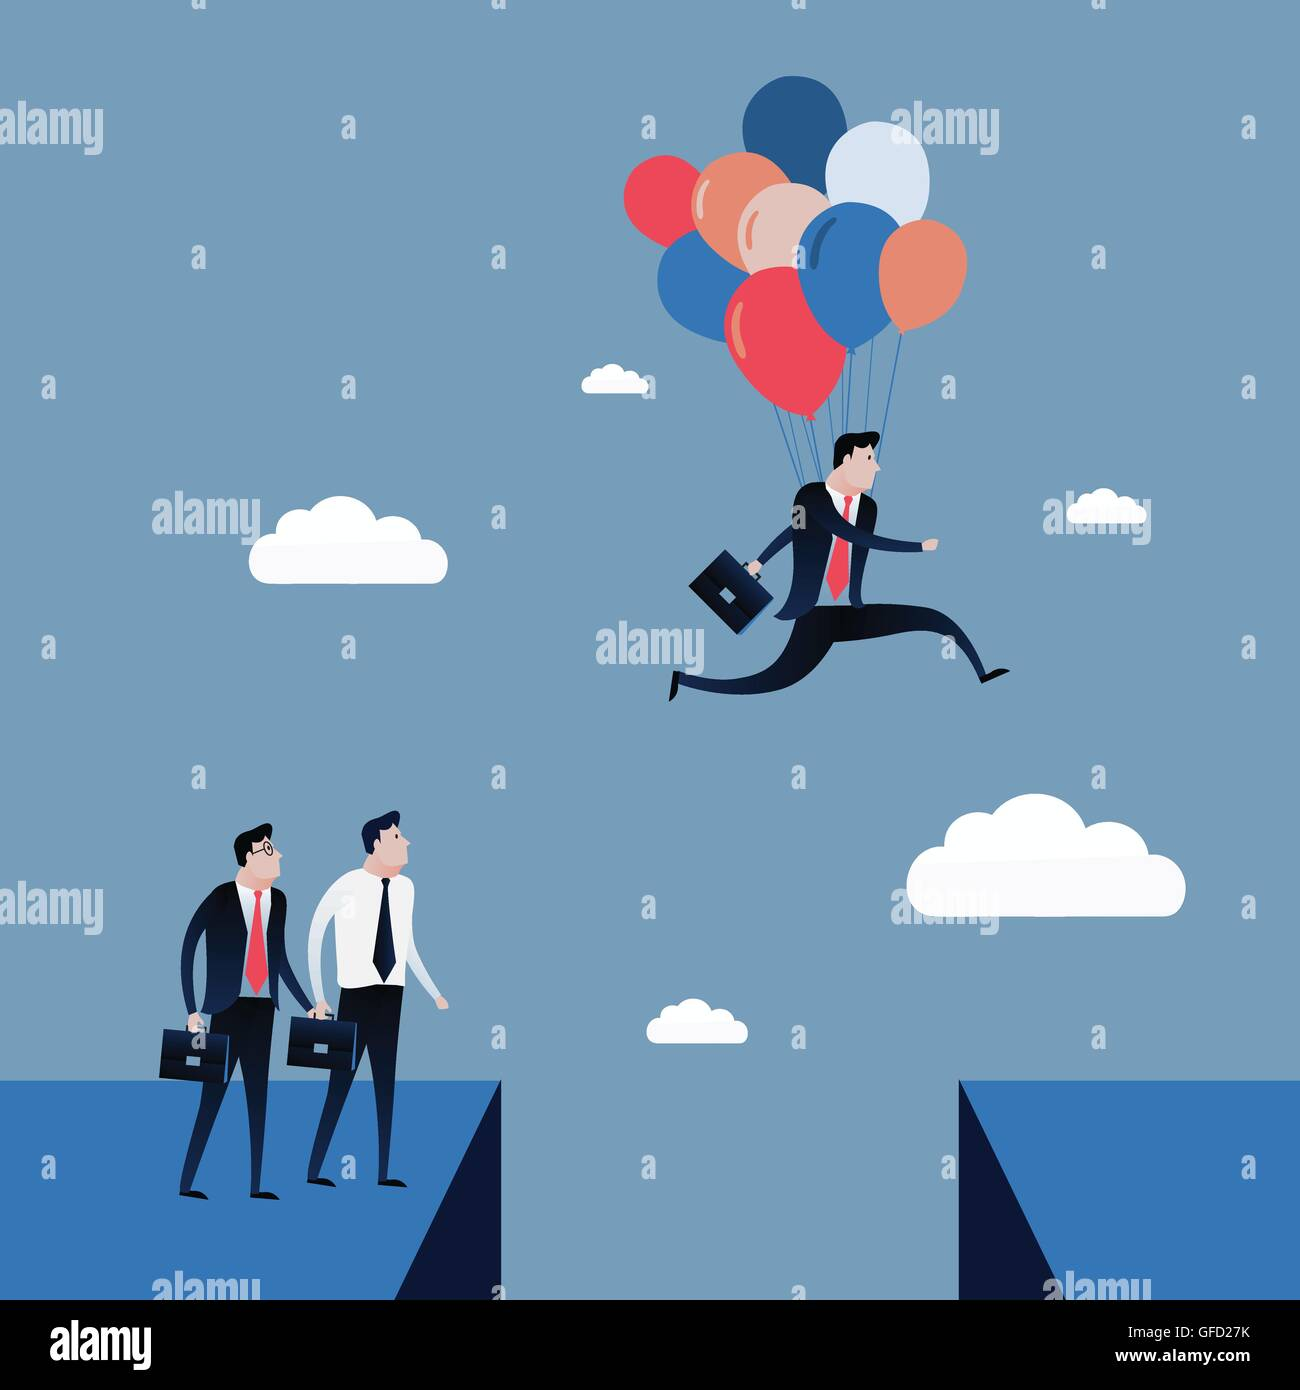 Businessman jumping to the blue sky with balloons. Business concept illustration vector - Stock Image